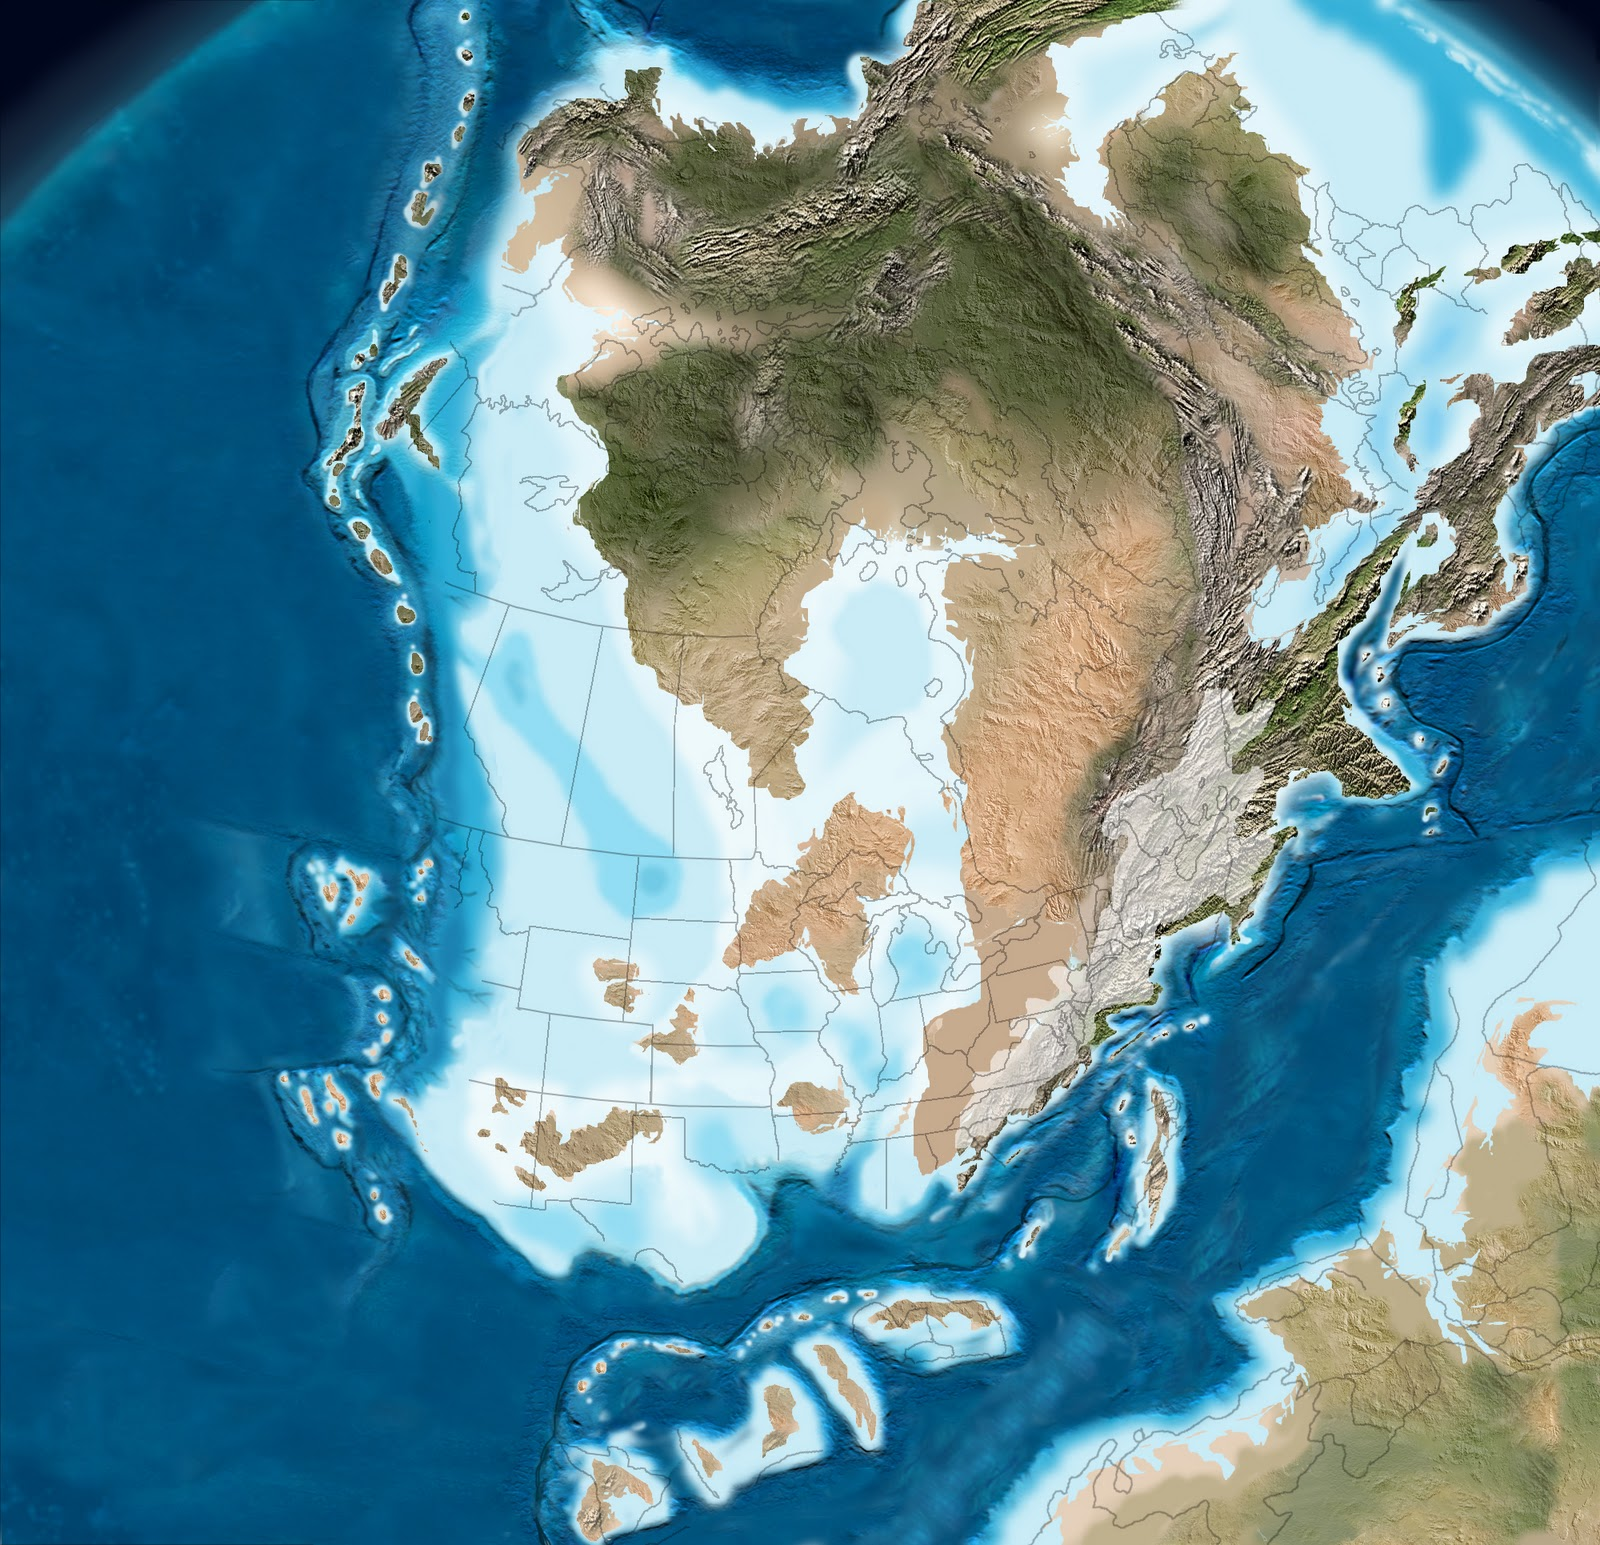 The Supercontinents Of Gondwana Visible In Lower Right And Laurussia Nascent North America